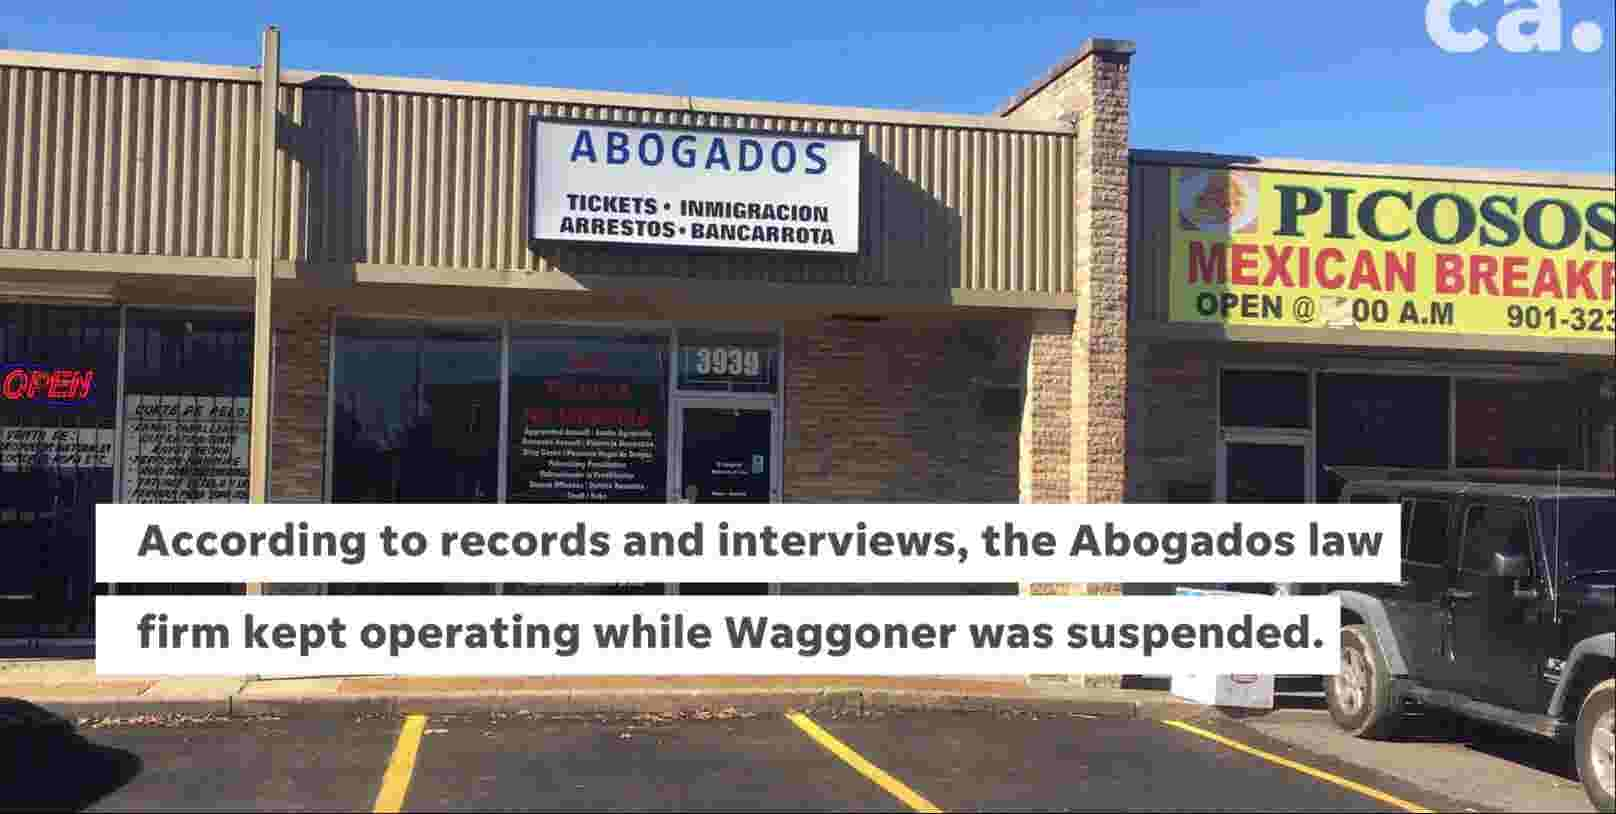 Abogados law firm shutdown: State board asks people affected to file